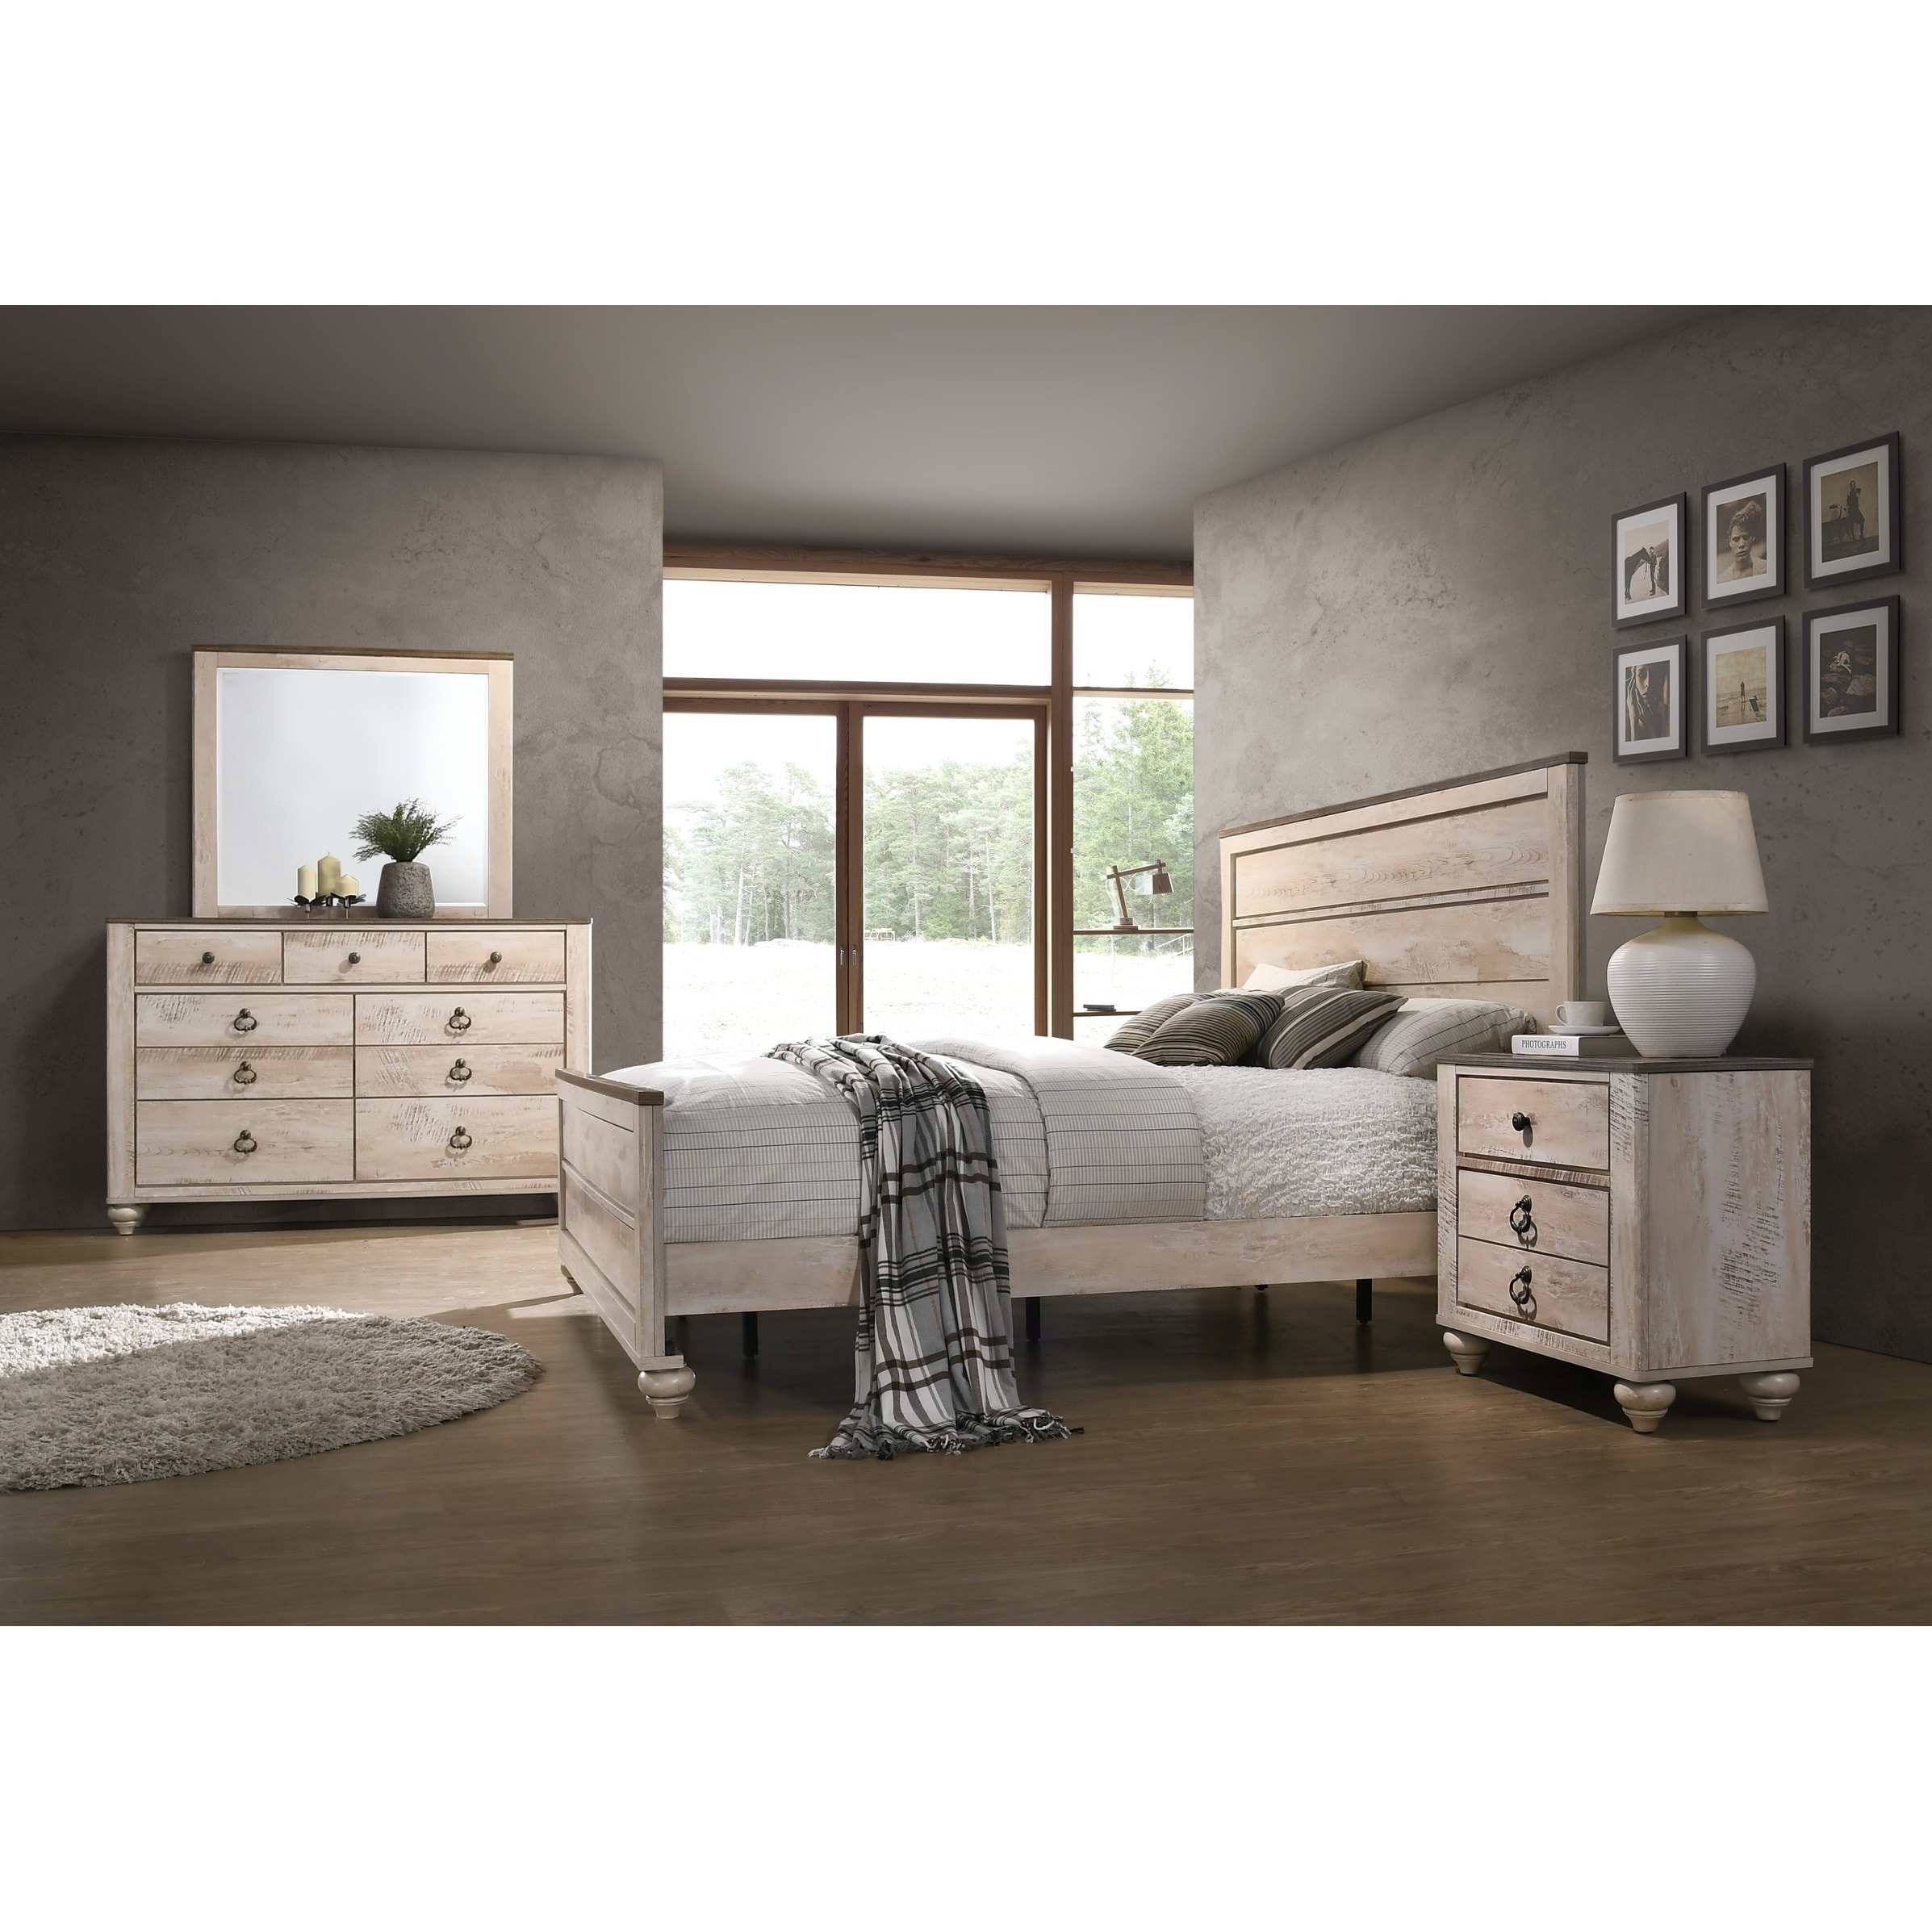 Imerland Contemporary White Wash Finish 4-Piece Bedroom Set, Queen